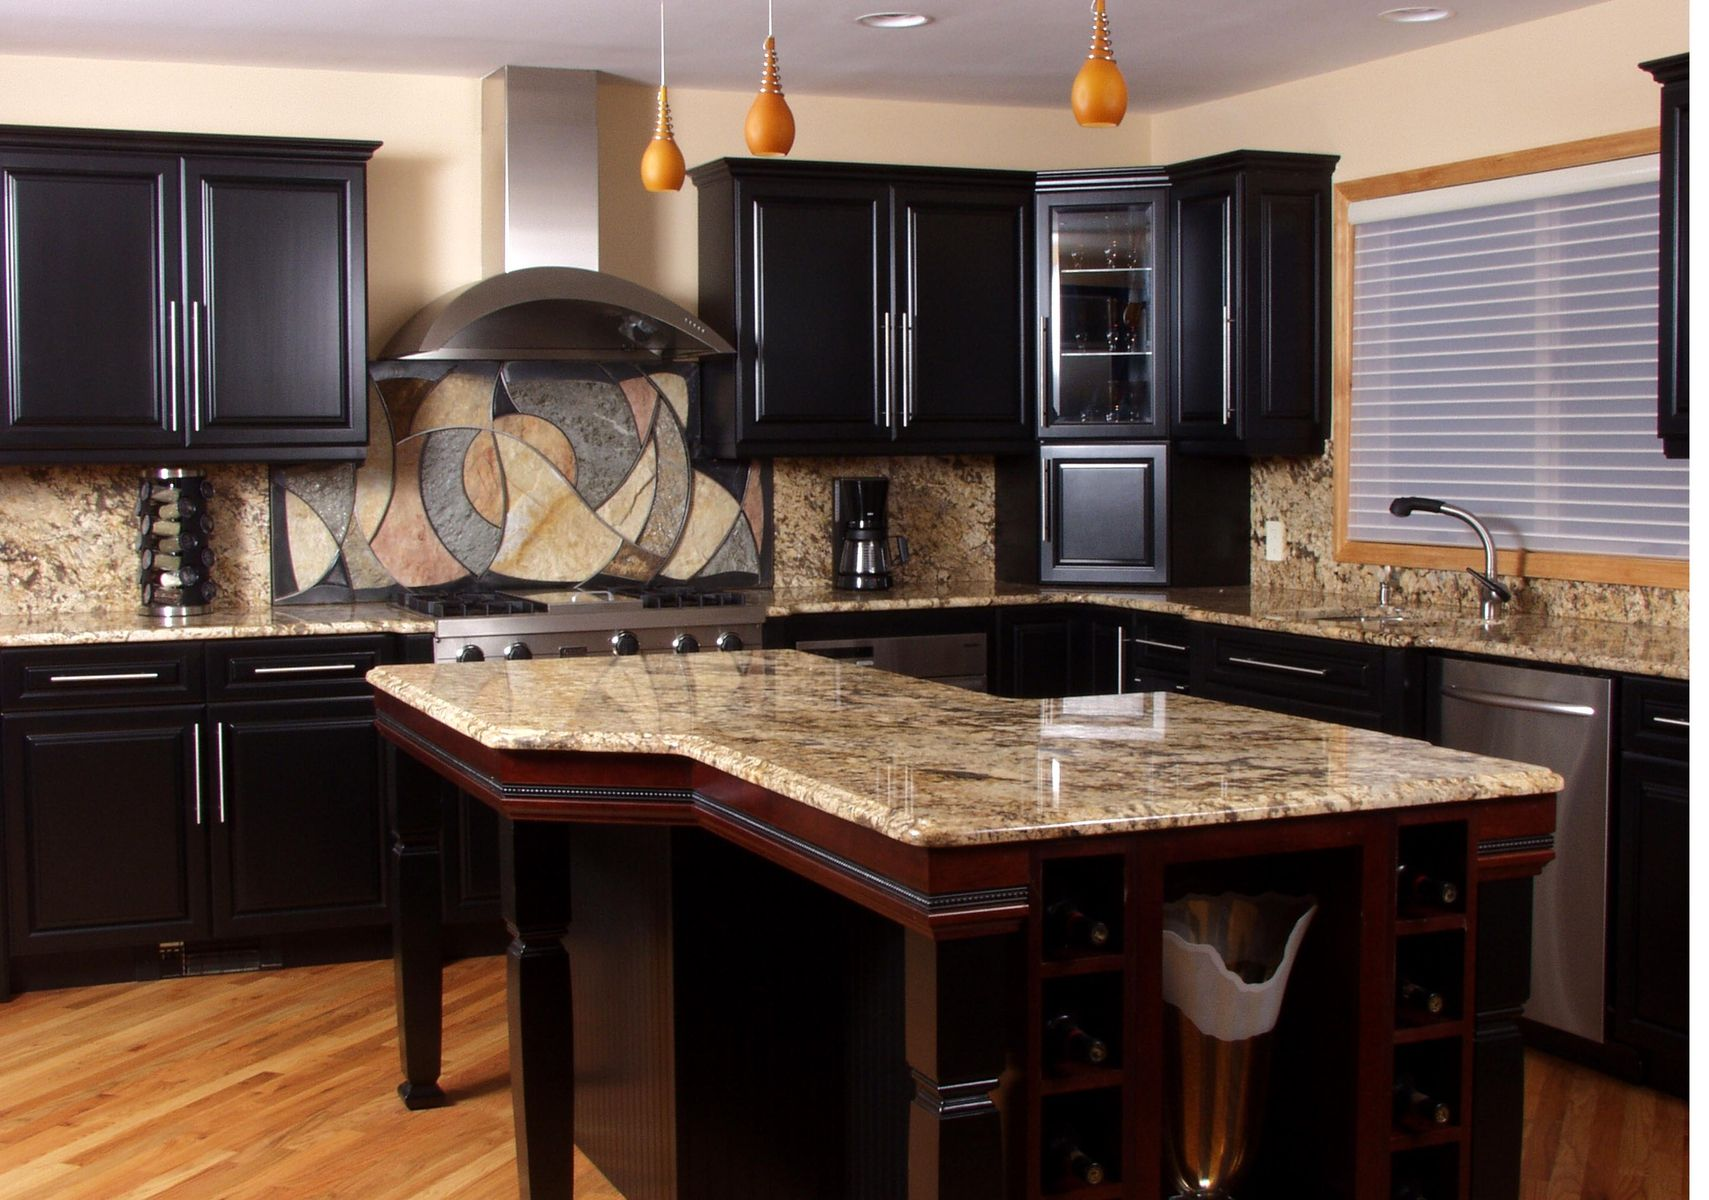 Custom Circles And Waves Backsplash By Eric David Laxman